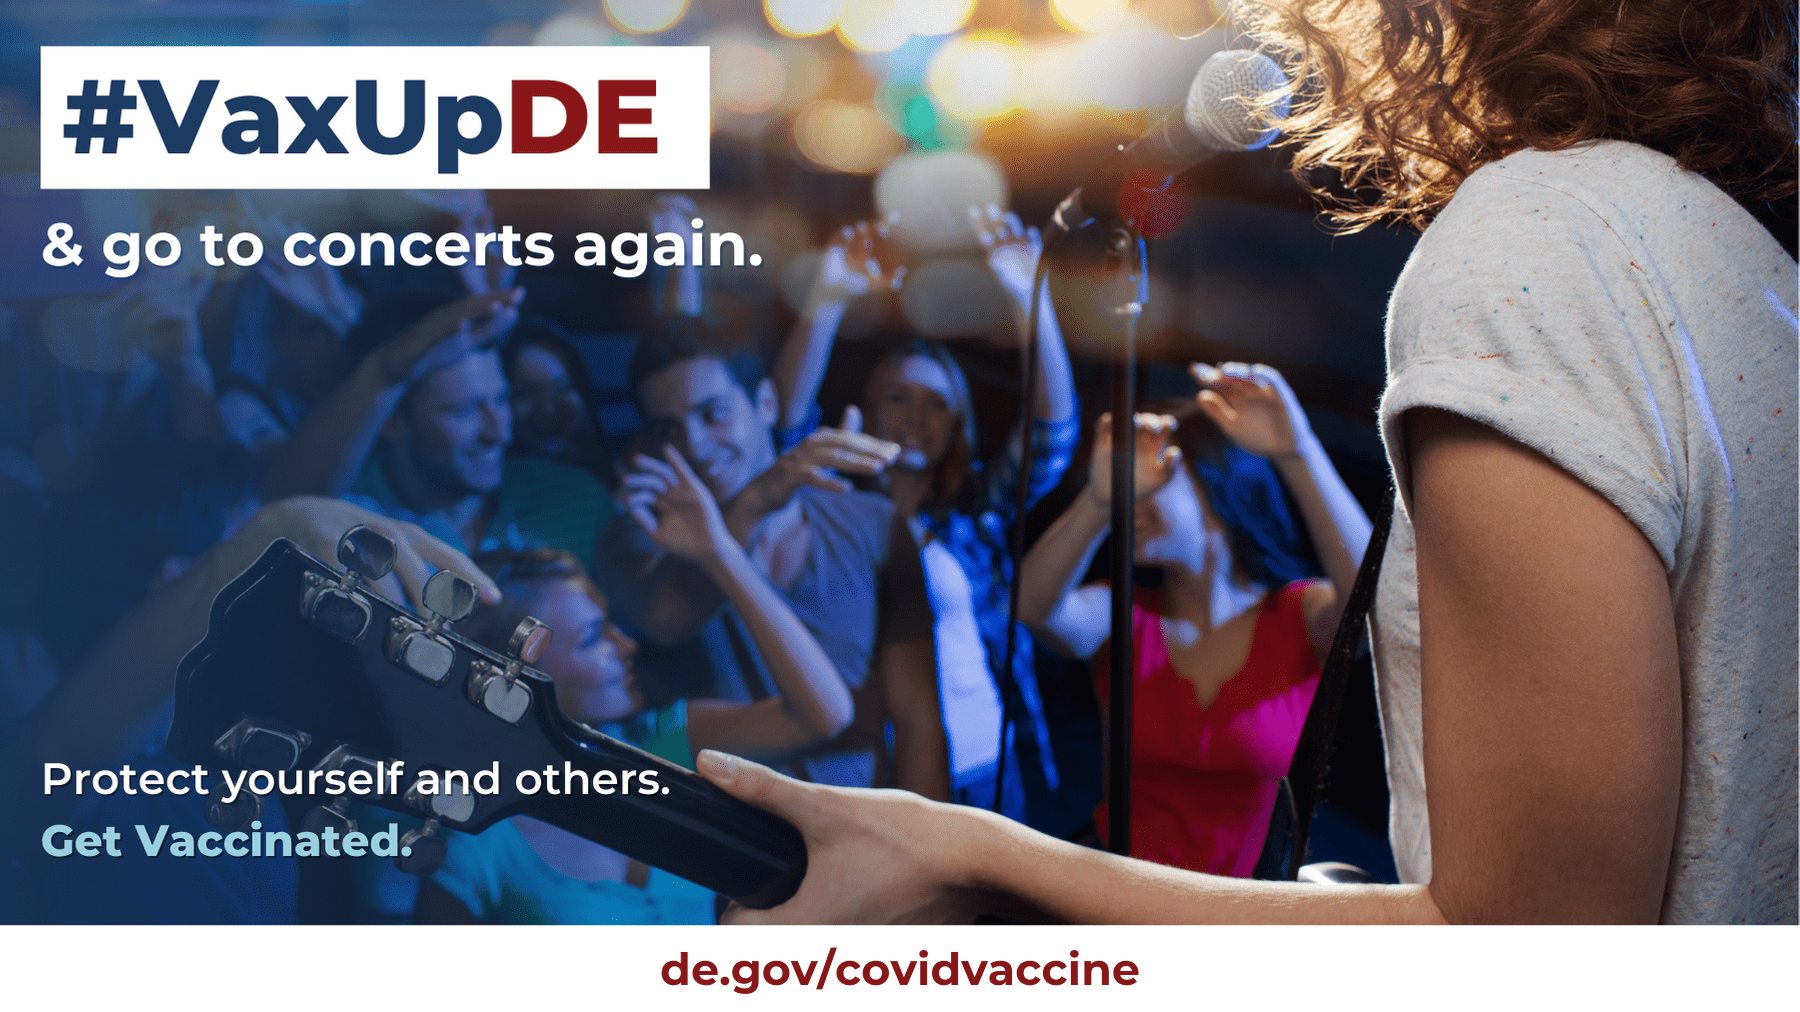 VaxUpDE. Protect yourself and others. Get Vaccinated. A concert scene is shown.